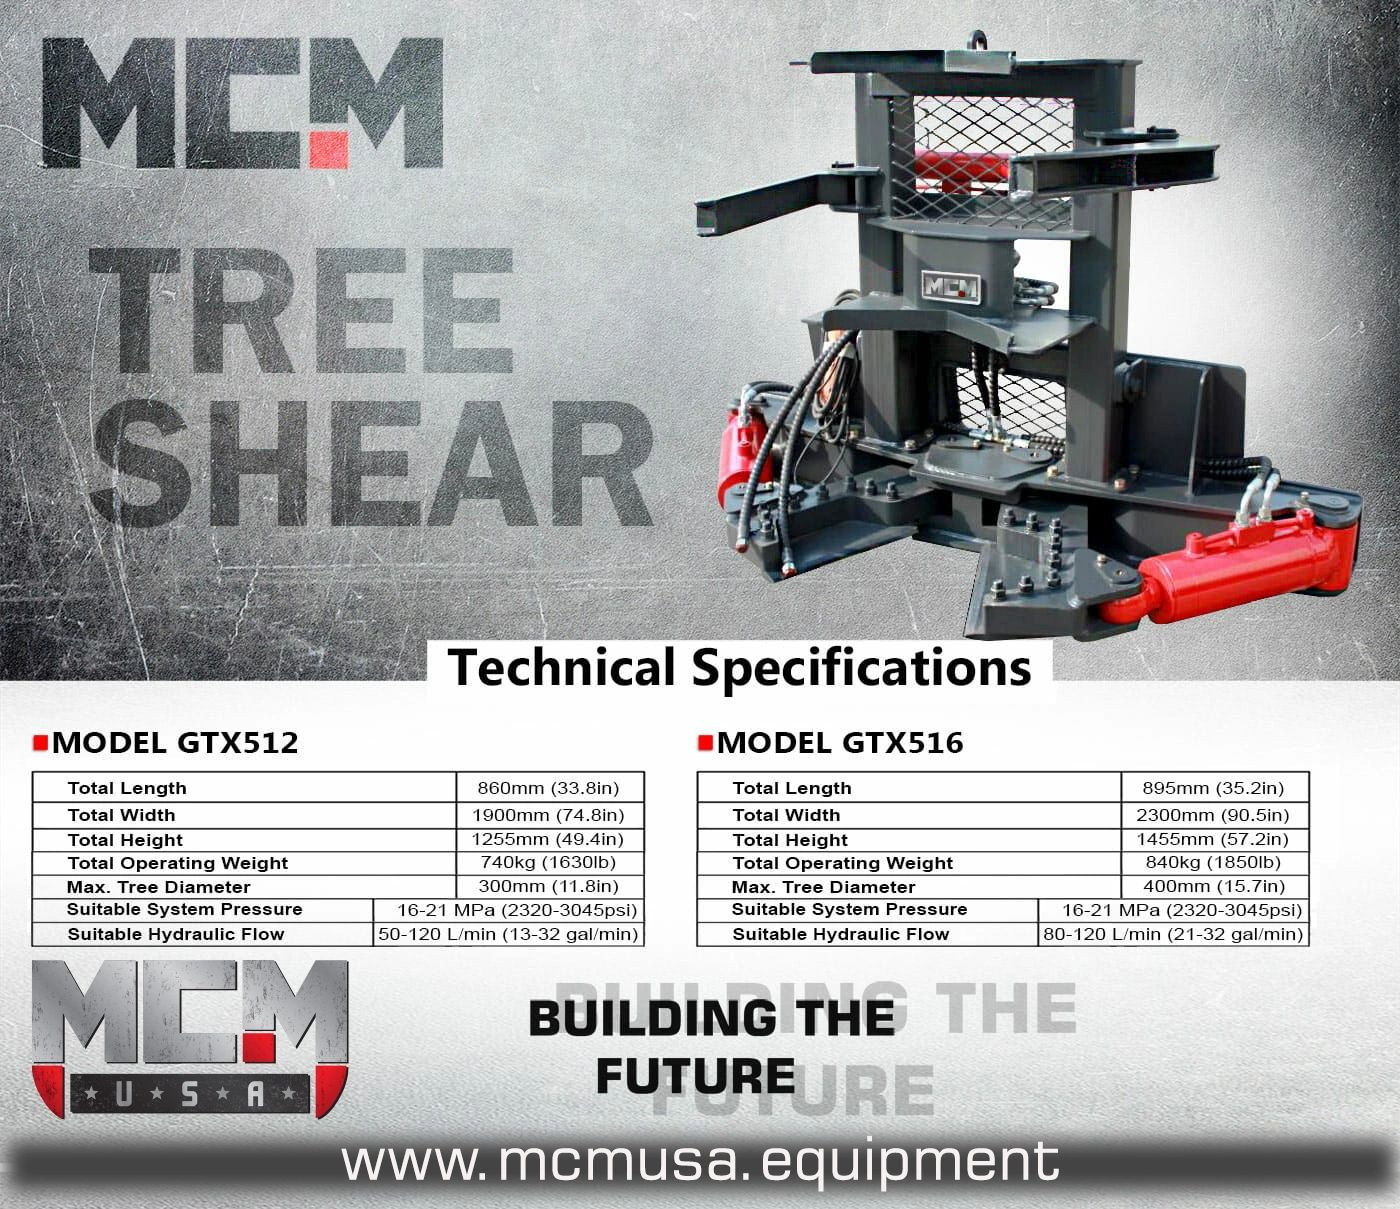 "MCM GTX516 Heavy Duty Tree Shear, 5"" cylinders cut through up to 16"" trees in a single cut"